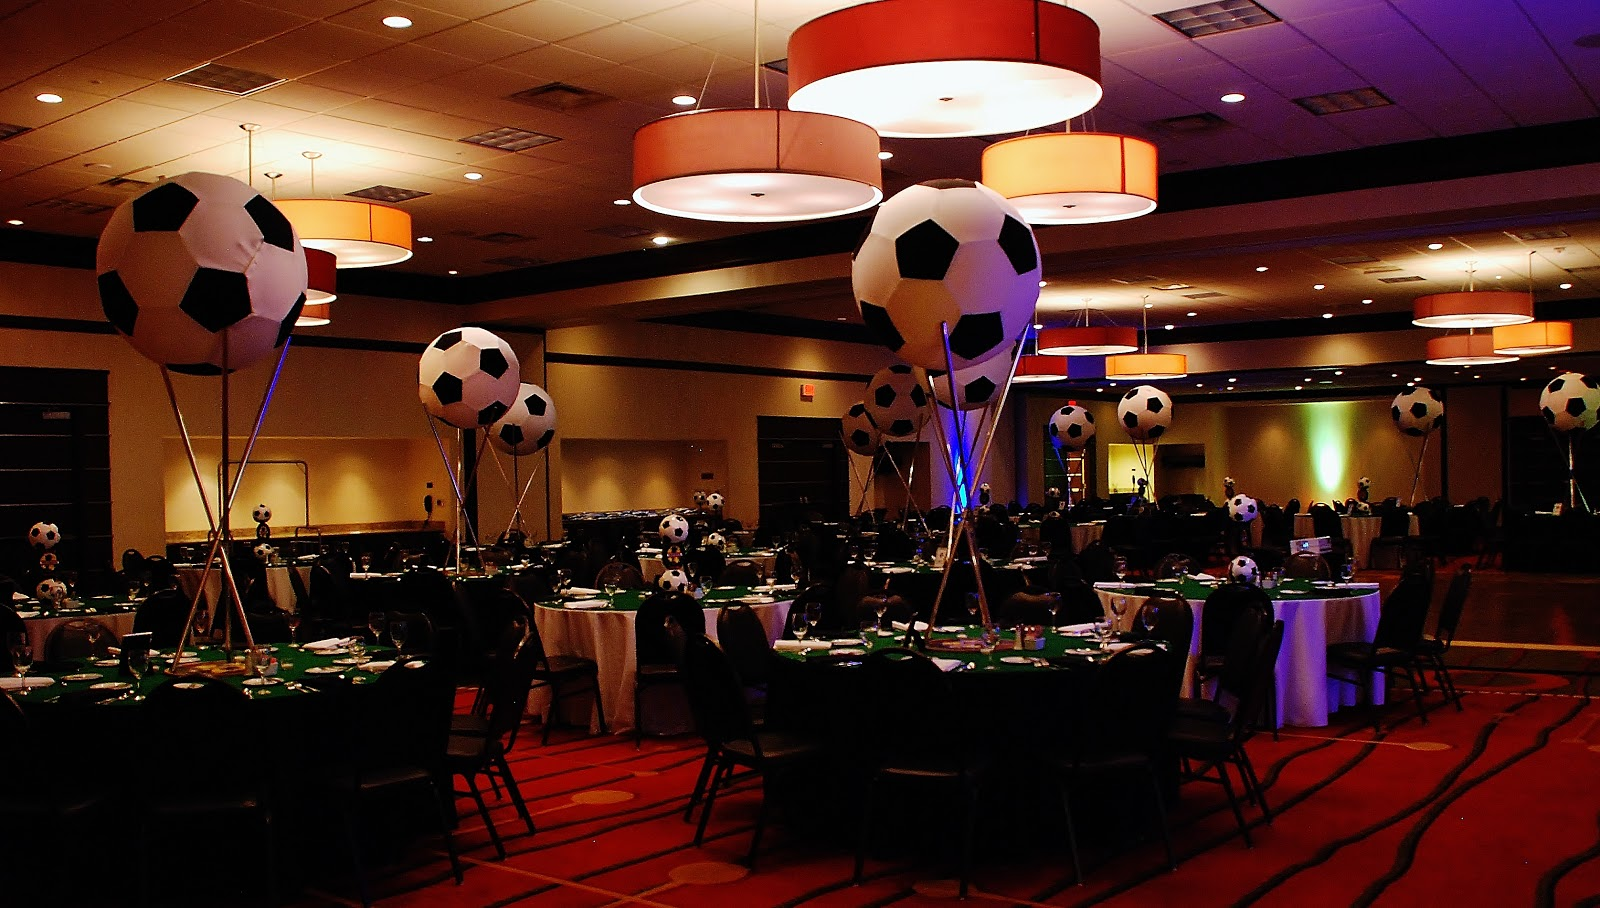 Soccer Decorations For Tables